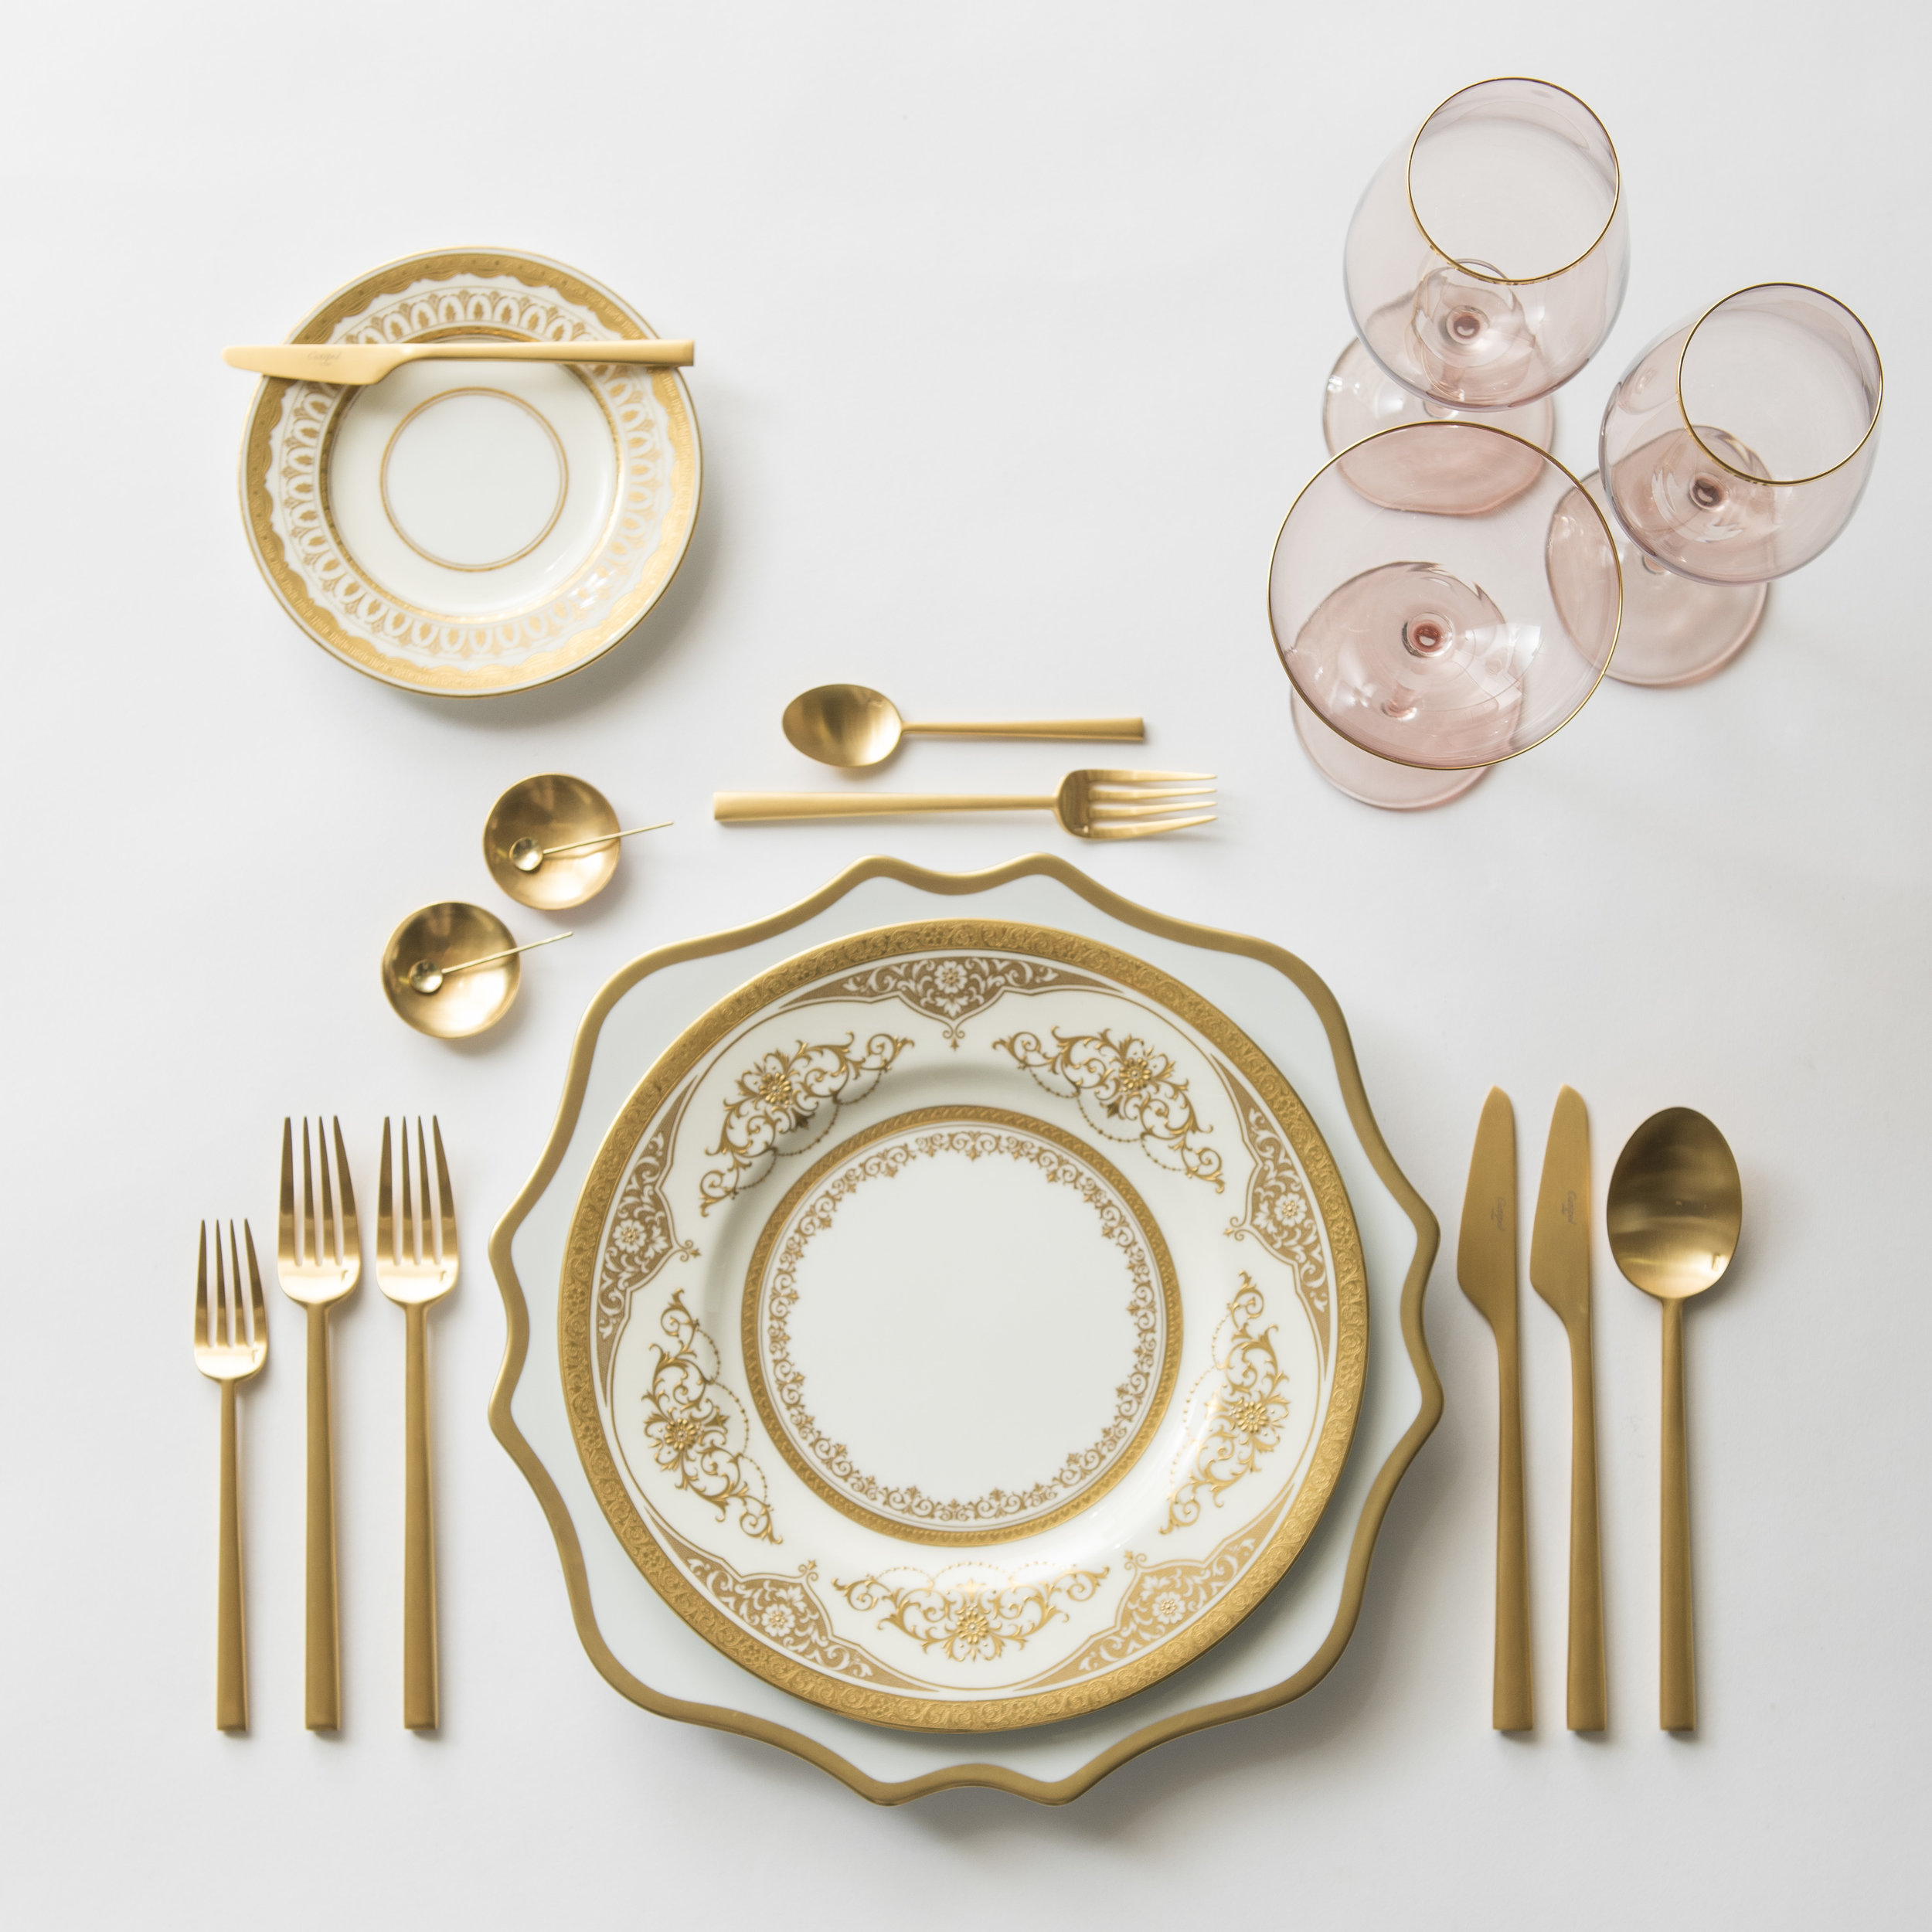 RENT: Anna Weatherley Chargers in White/Gold + Crown Gold Collection Vintage China + Rondo Flatware in Brushed 24k Gold + Bella 24k Gold Rimmed Stemware in Blush + 14k Gold Salt Cellars + Tiny Gold Spoons  SHOP: Anna Weatherley Chargers in White/Gold + Rondo Flatware in Brushed 24k Gold + Bella 24k Gold Rimmed Stemware in Blush + 14k Gold Salt Cellars + Tiny Gold Spoons